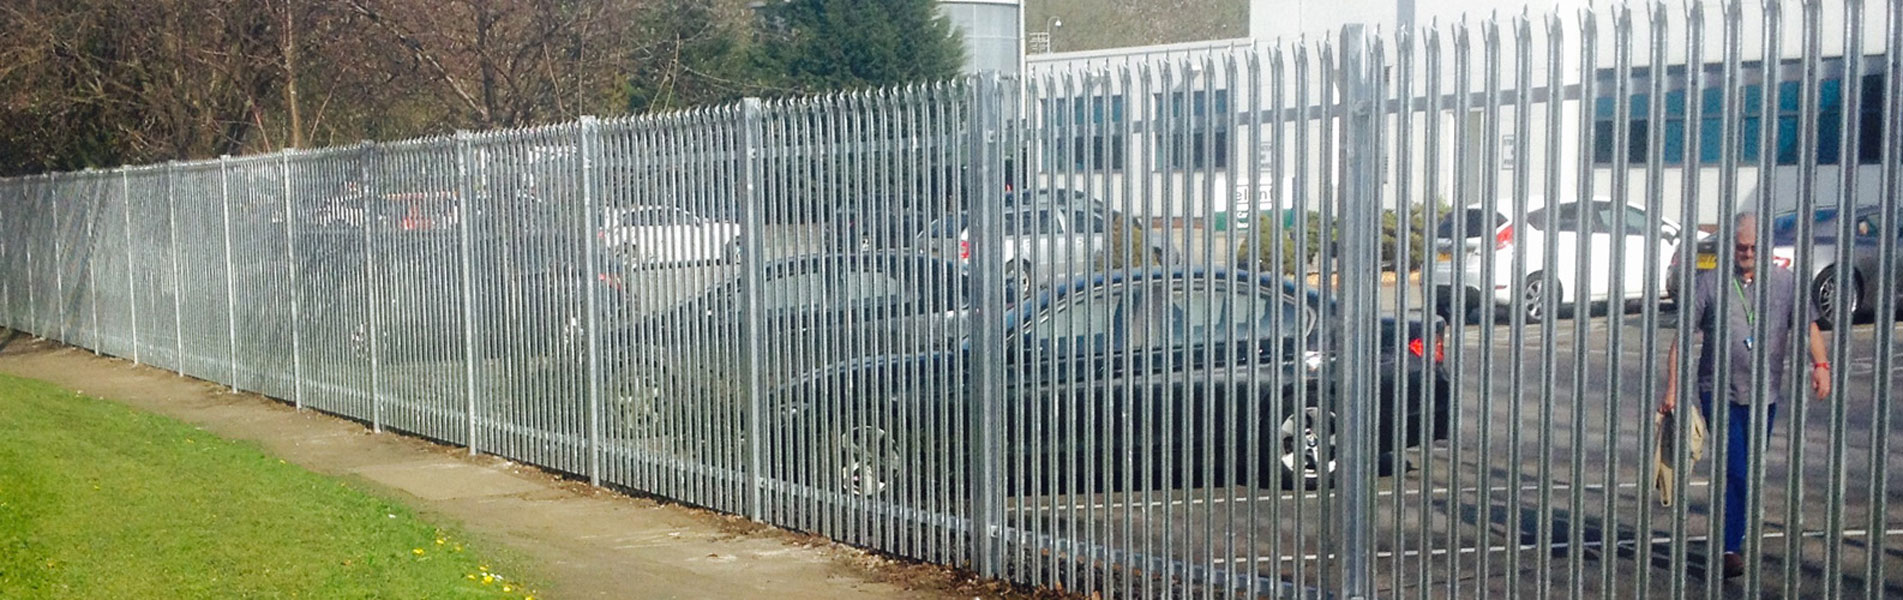 Domestic, Sports and Agricultural Fencing